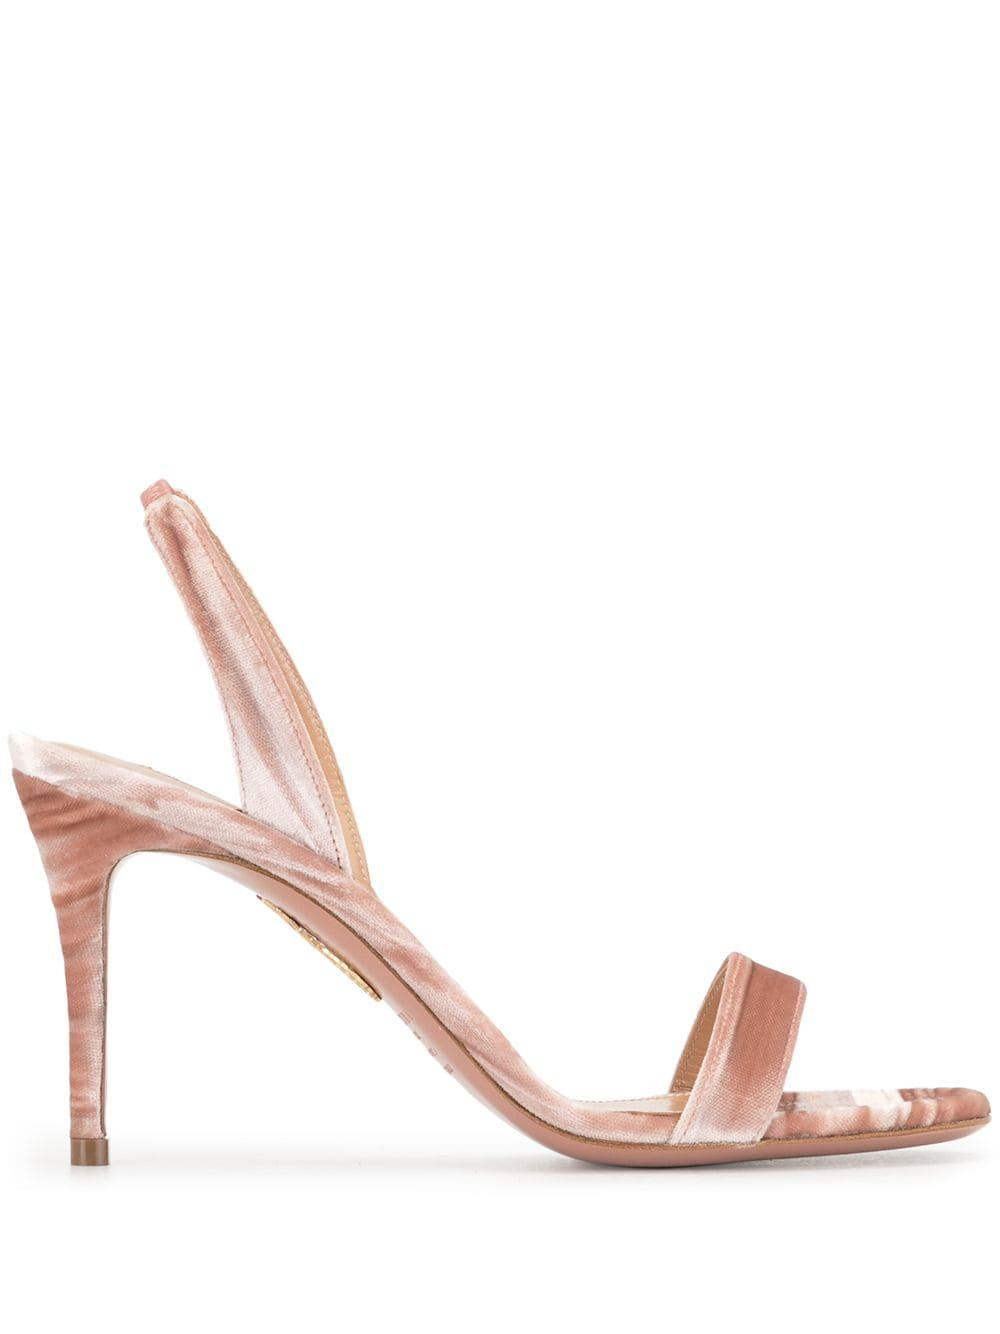 So Nude Velvet 85mm Sandal